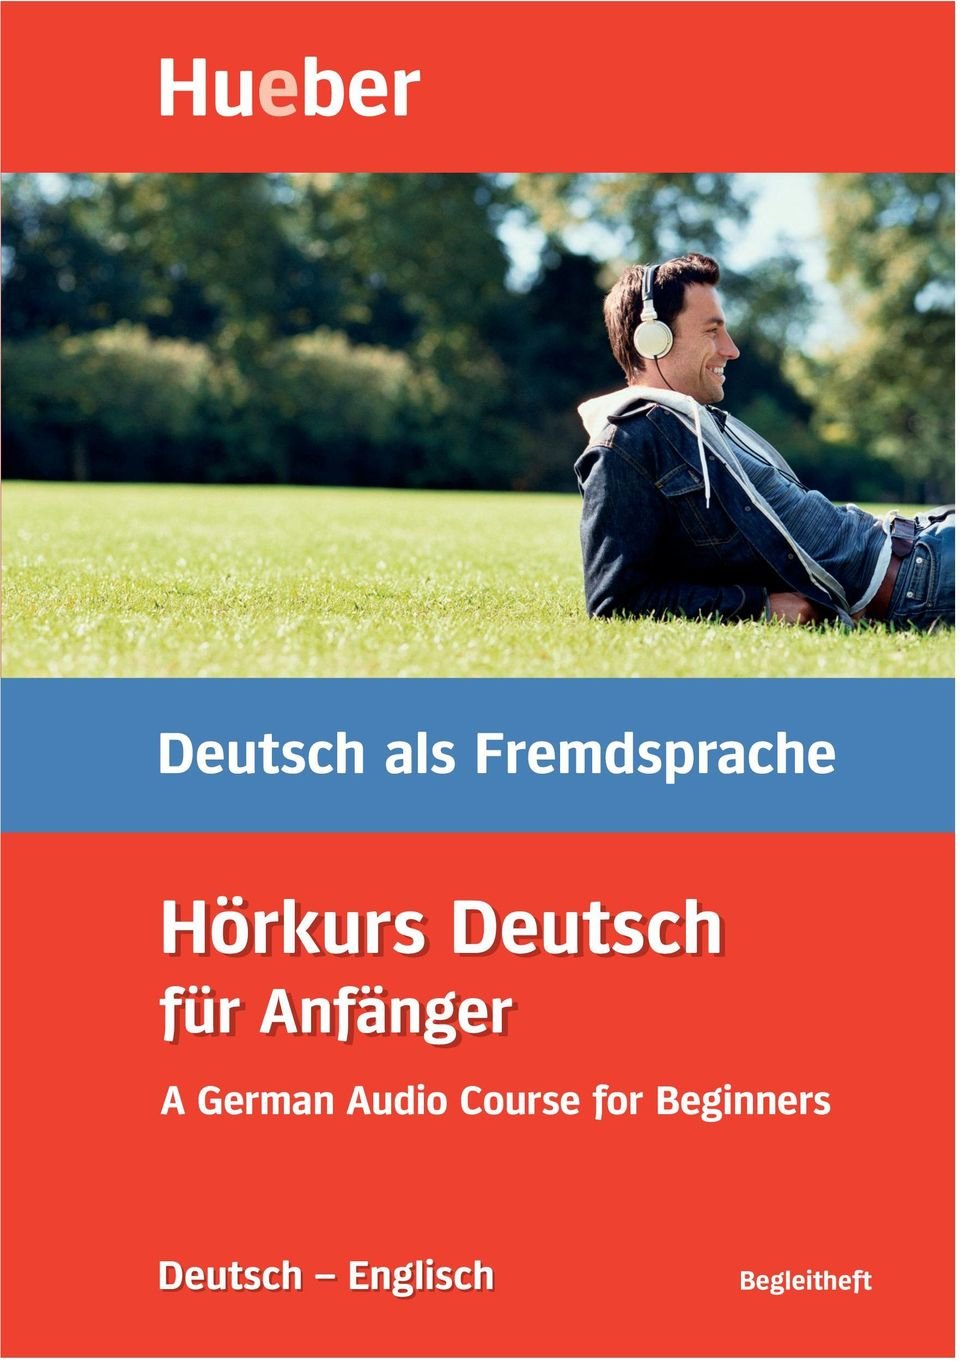 German Audio Course for